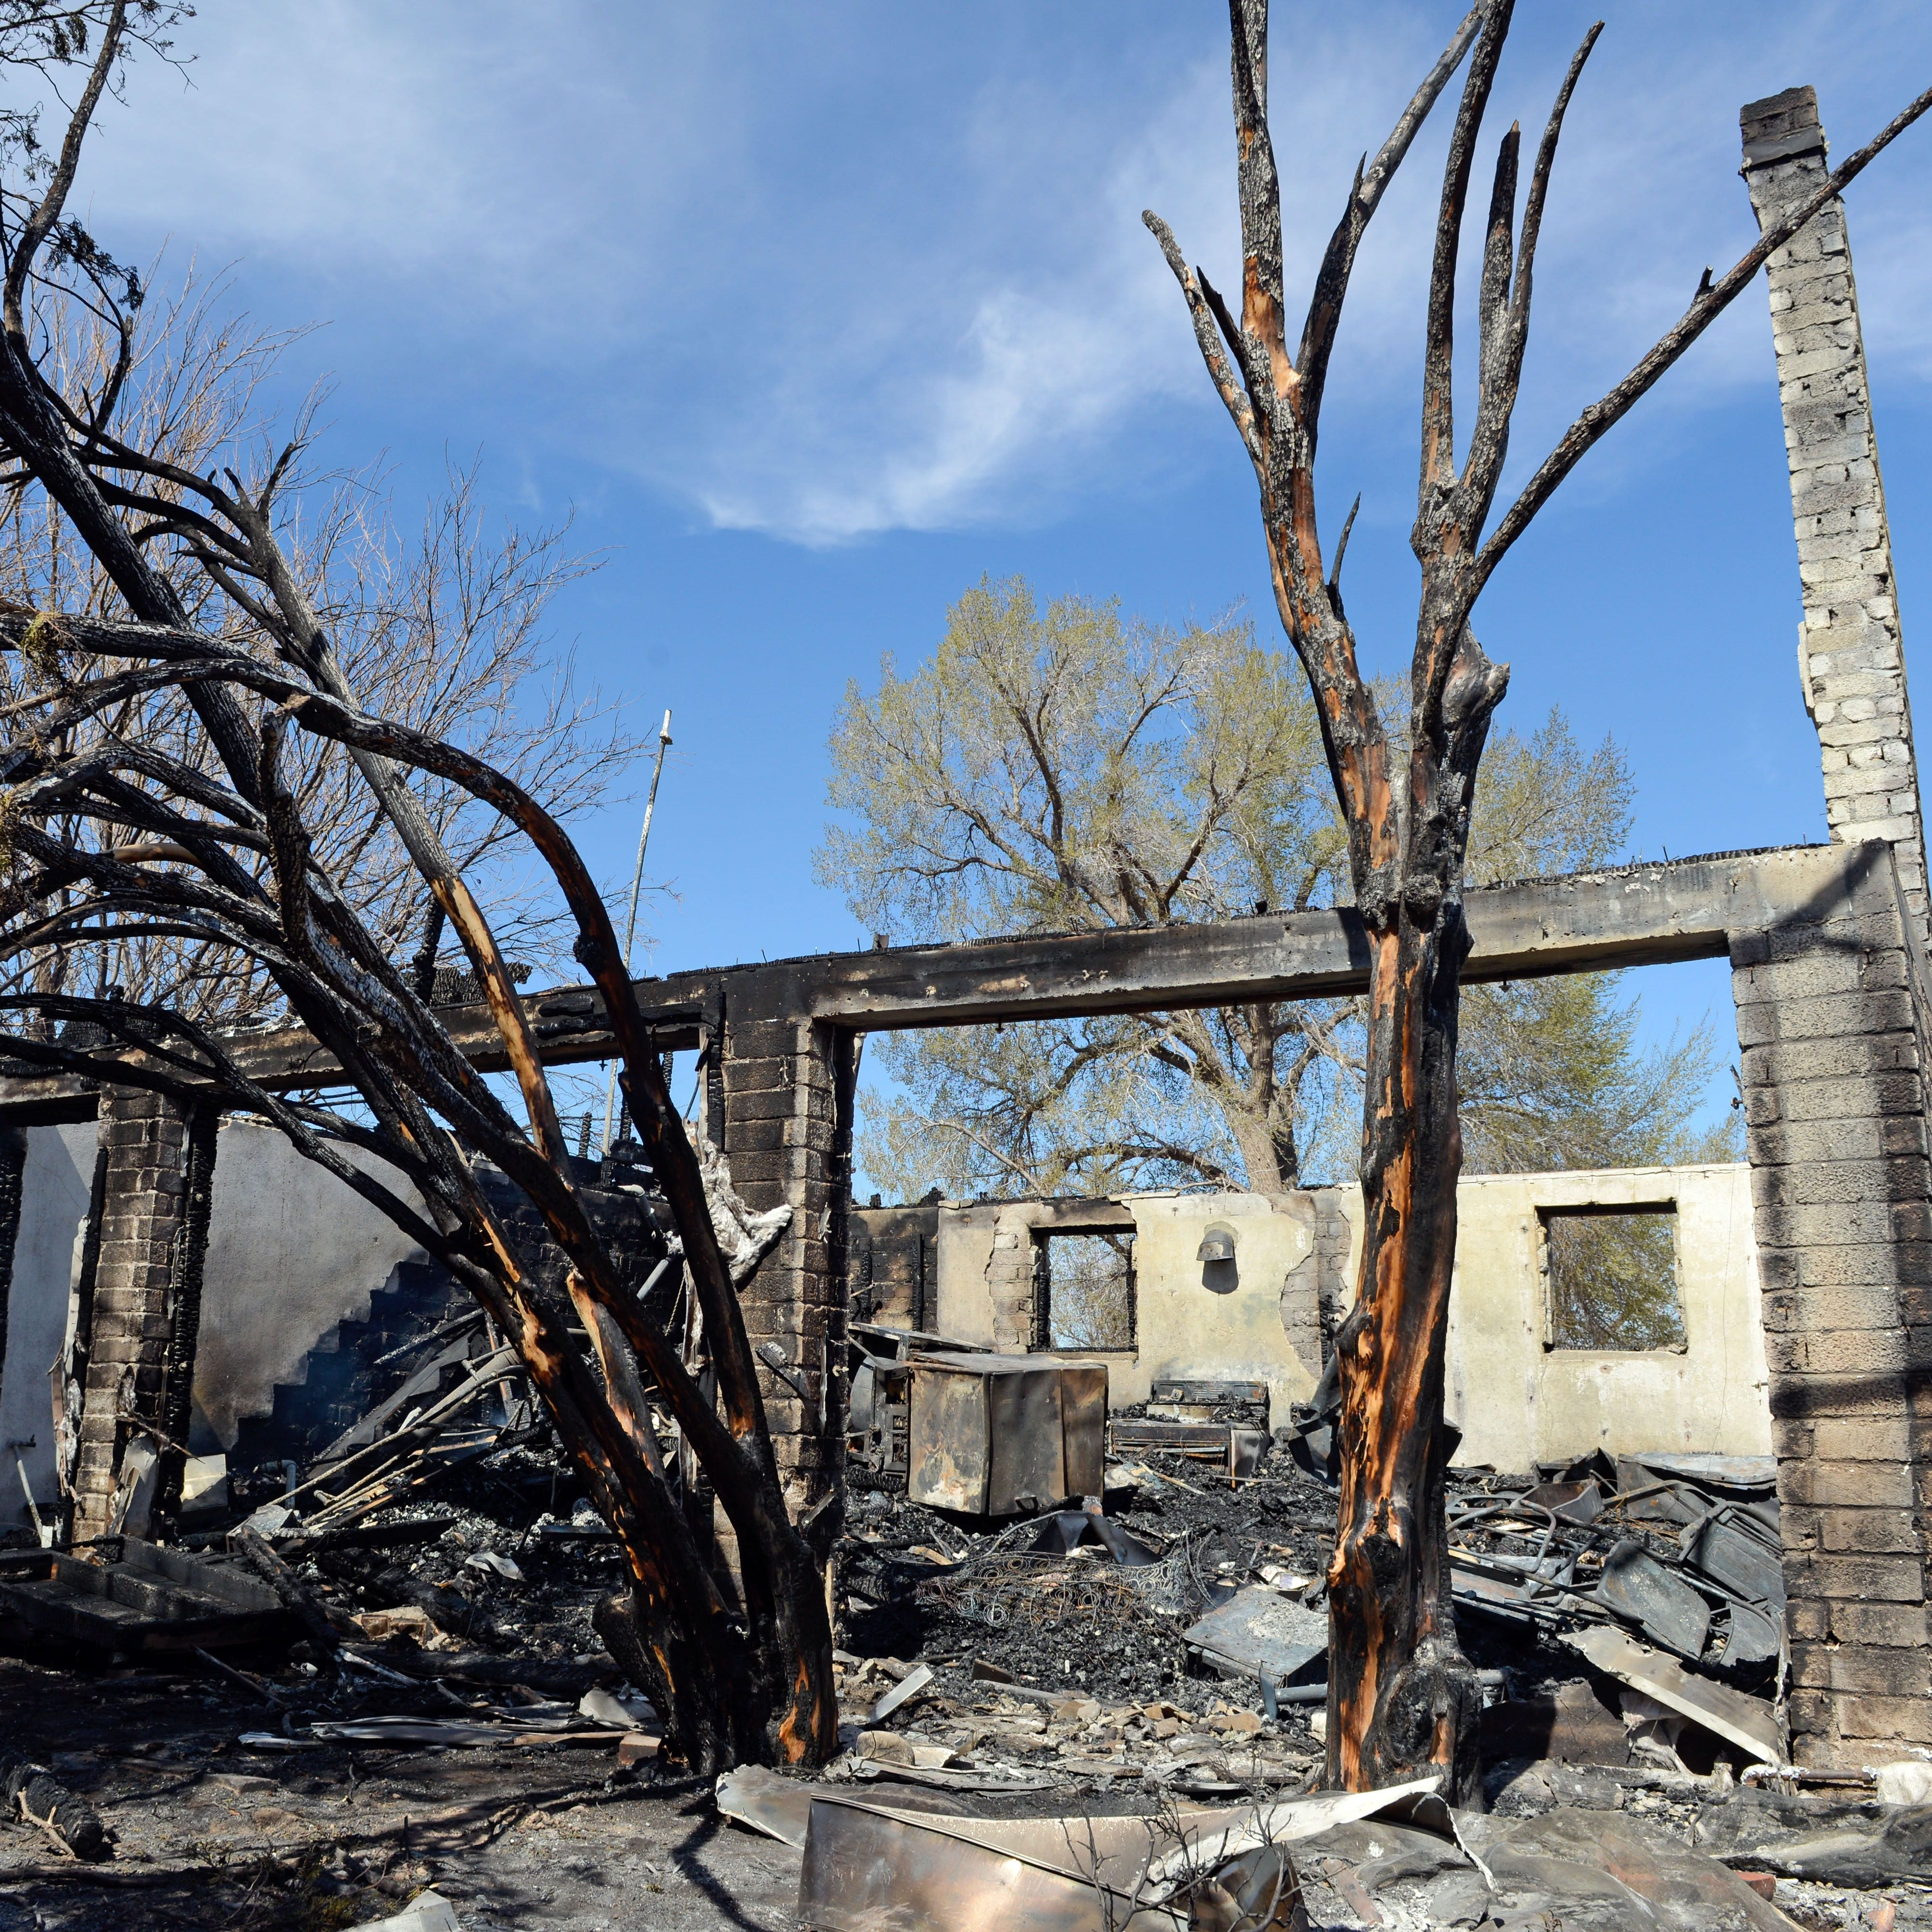 Man charged with arson in Hatch fire; discarded hookah coals carelessly